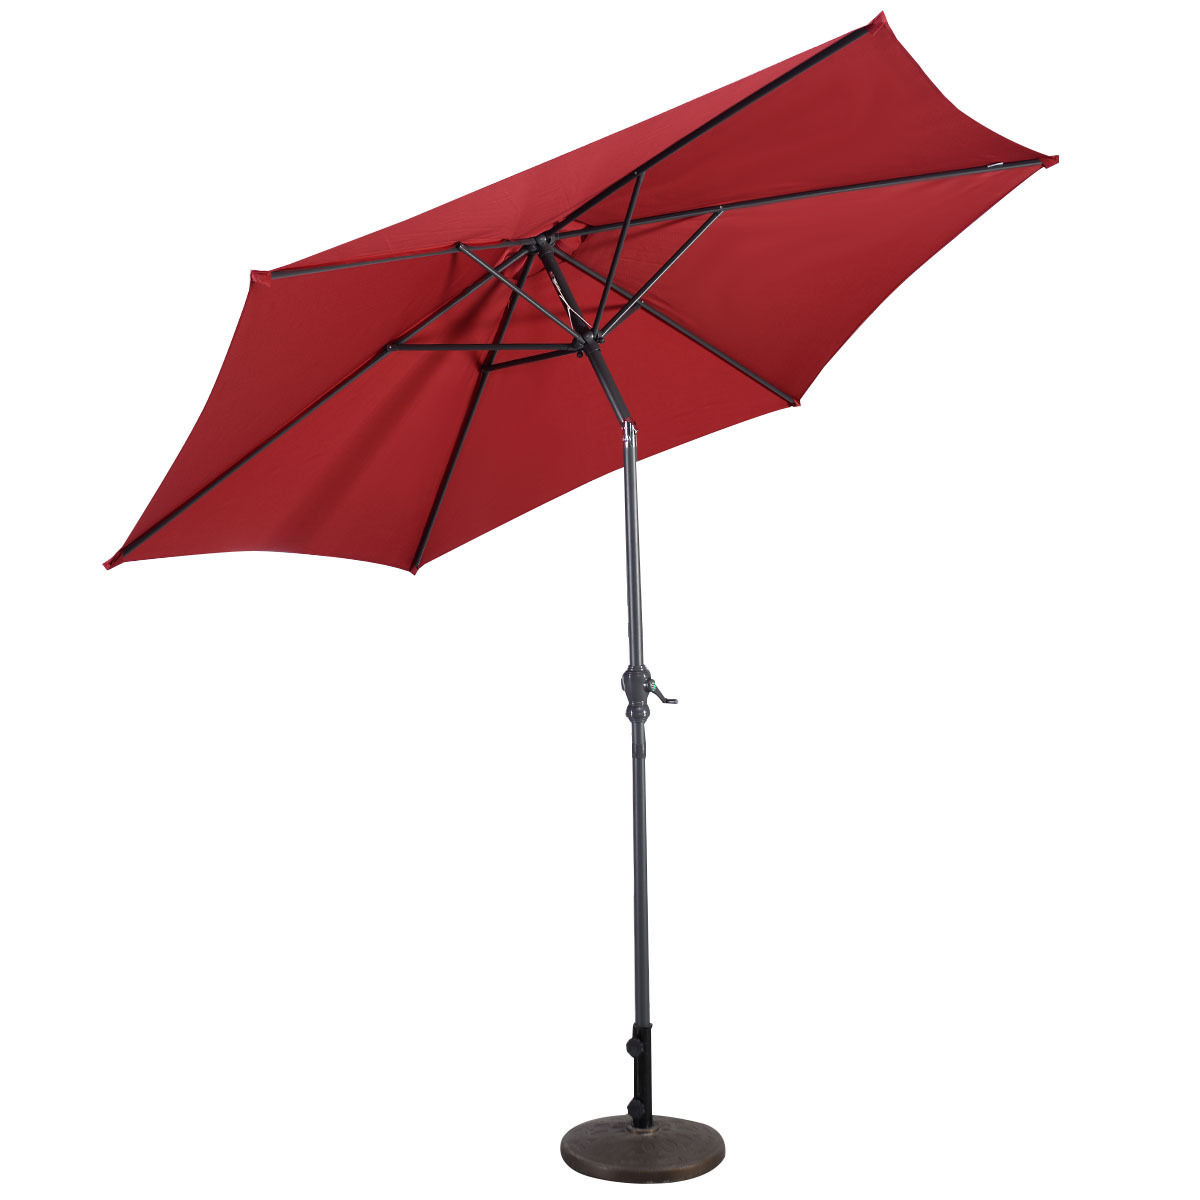 Superb Costway 9FT Patio Umbrella Patio Market Steel Tilt W/ Crank Outdoor Yard  Garden Burgundy